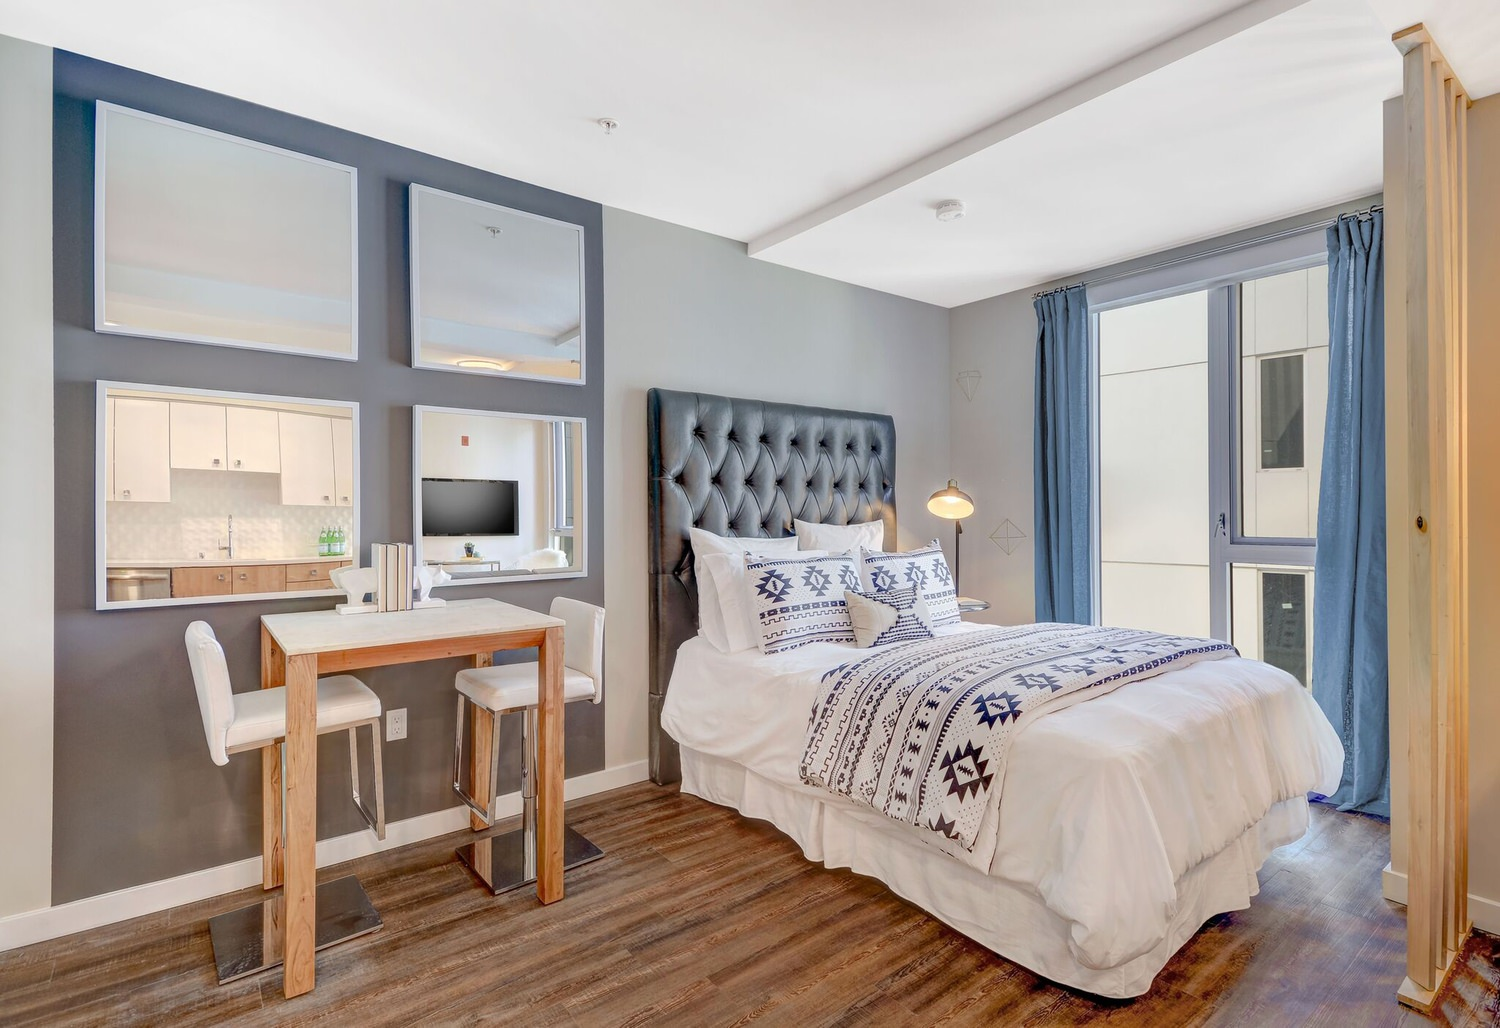 A bedroom with a a desk and chair that is next to a bed covered in white linens.